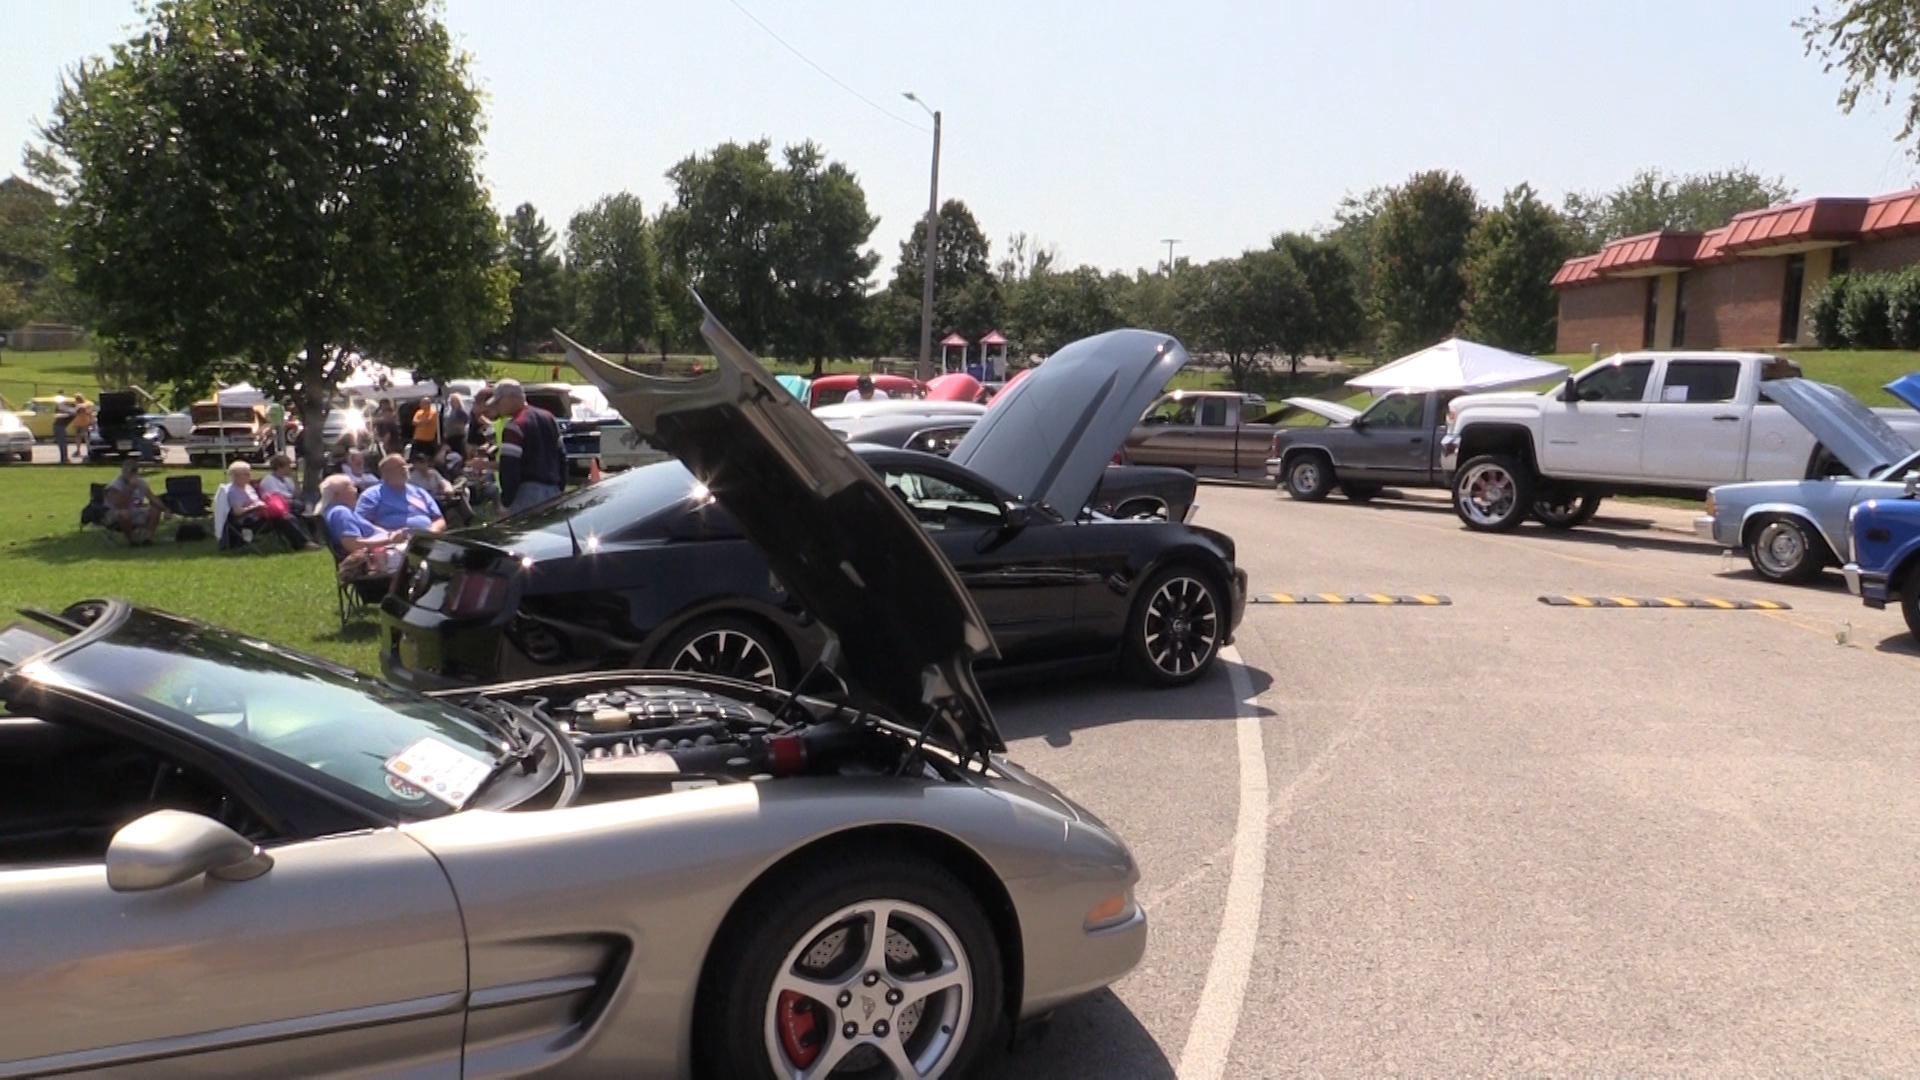 VIDEO - West Elementary Car Show